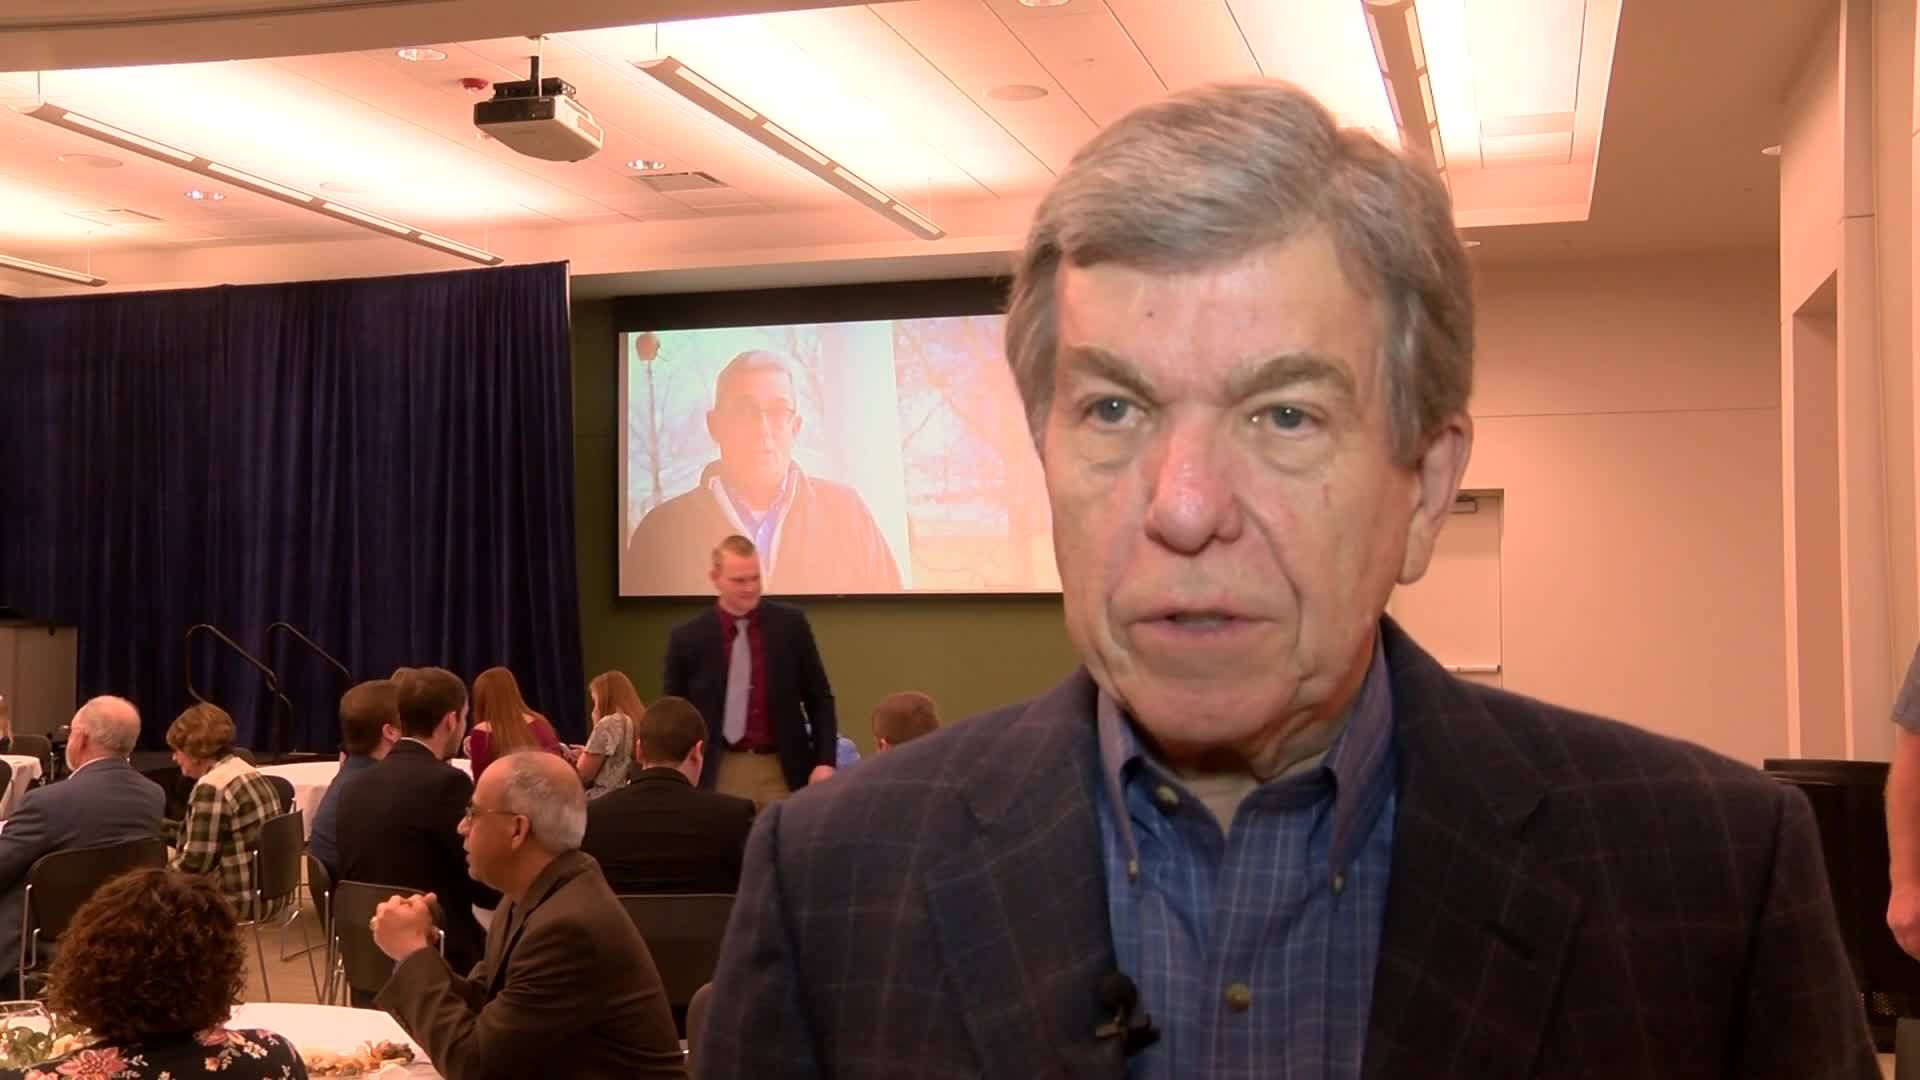 Full_Interview_with_Senator_Roy_Blunt_7_20190330033319